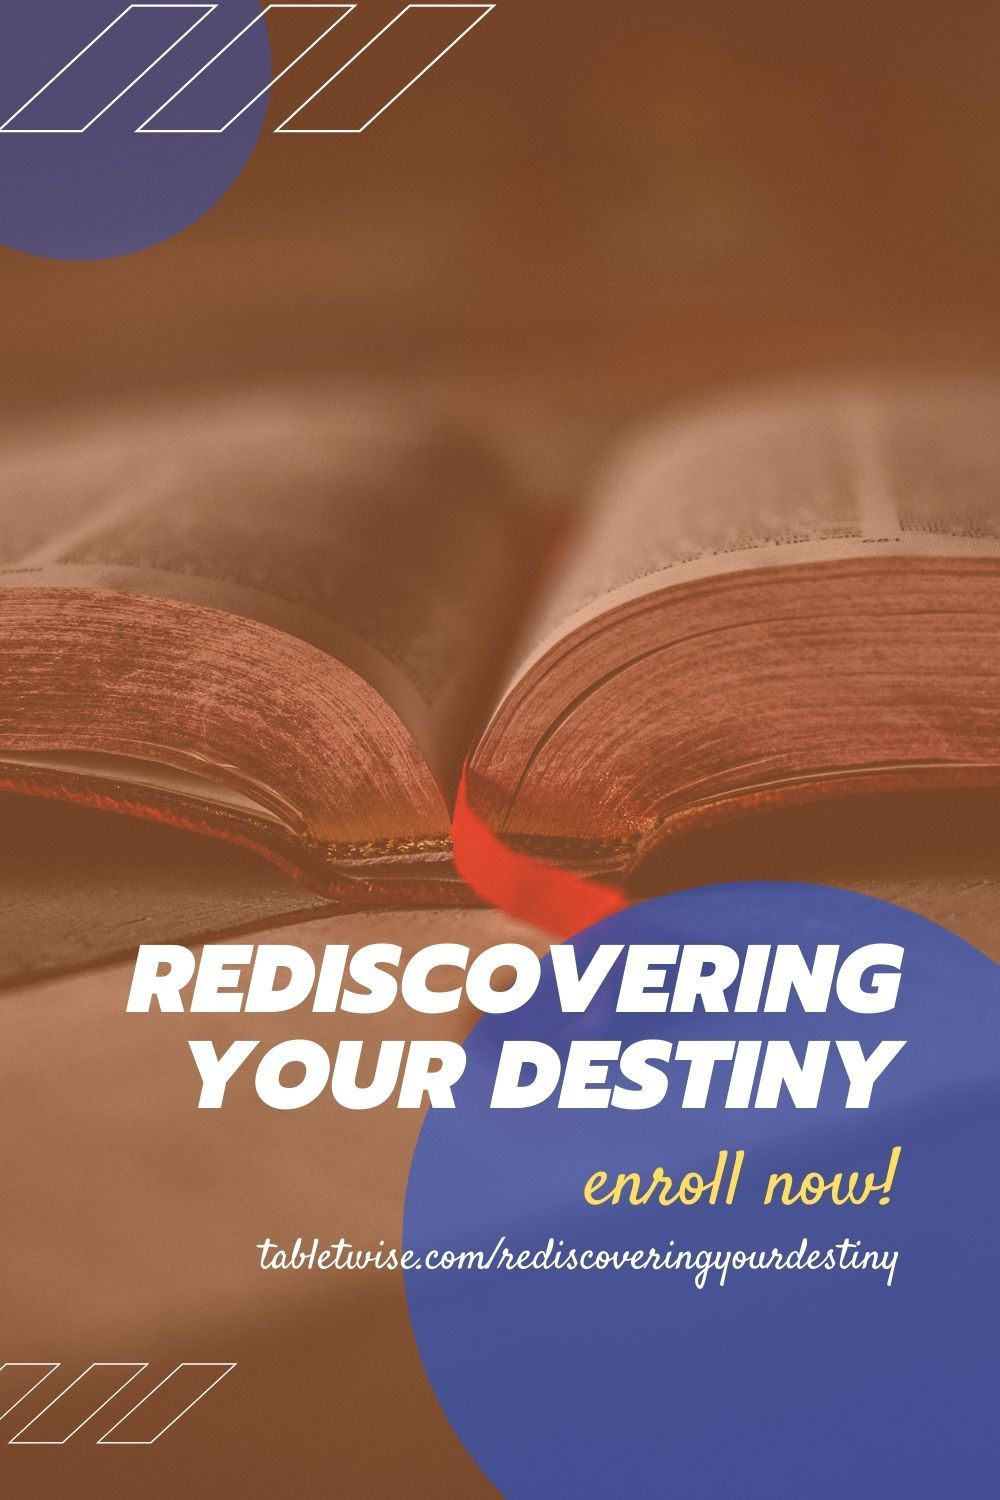 Rediscovering Your Destiny is a course that will help you recover a firm grasp of knowing where you are going directionally. If you've been impacted by downsizing, the global economic modifications, and are searching for recession and depression proof tools, you will benefit greatly from this course. #destiny #scripture #class #onlineclass #course #faith #rediscover #discover #gift #assignment #learn #enrollnow #success #ceoofdestiny #life #holybible #gospel